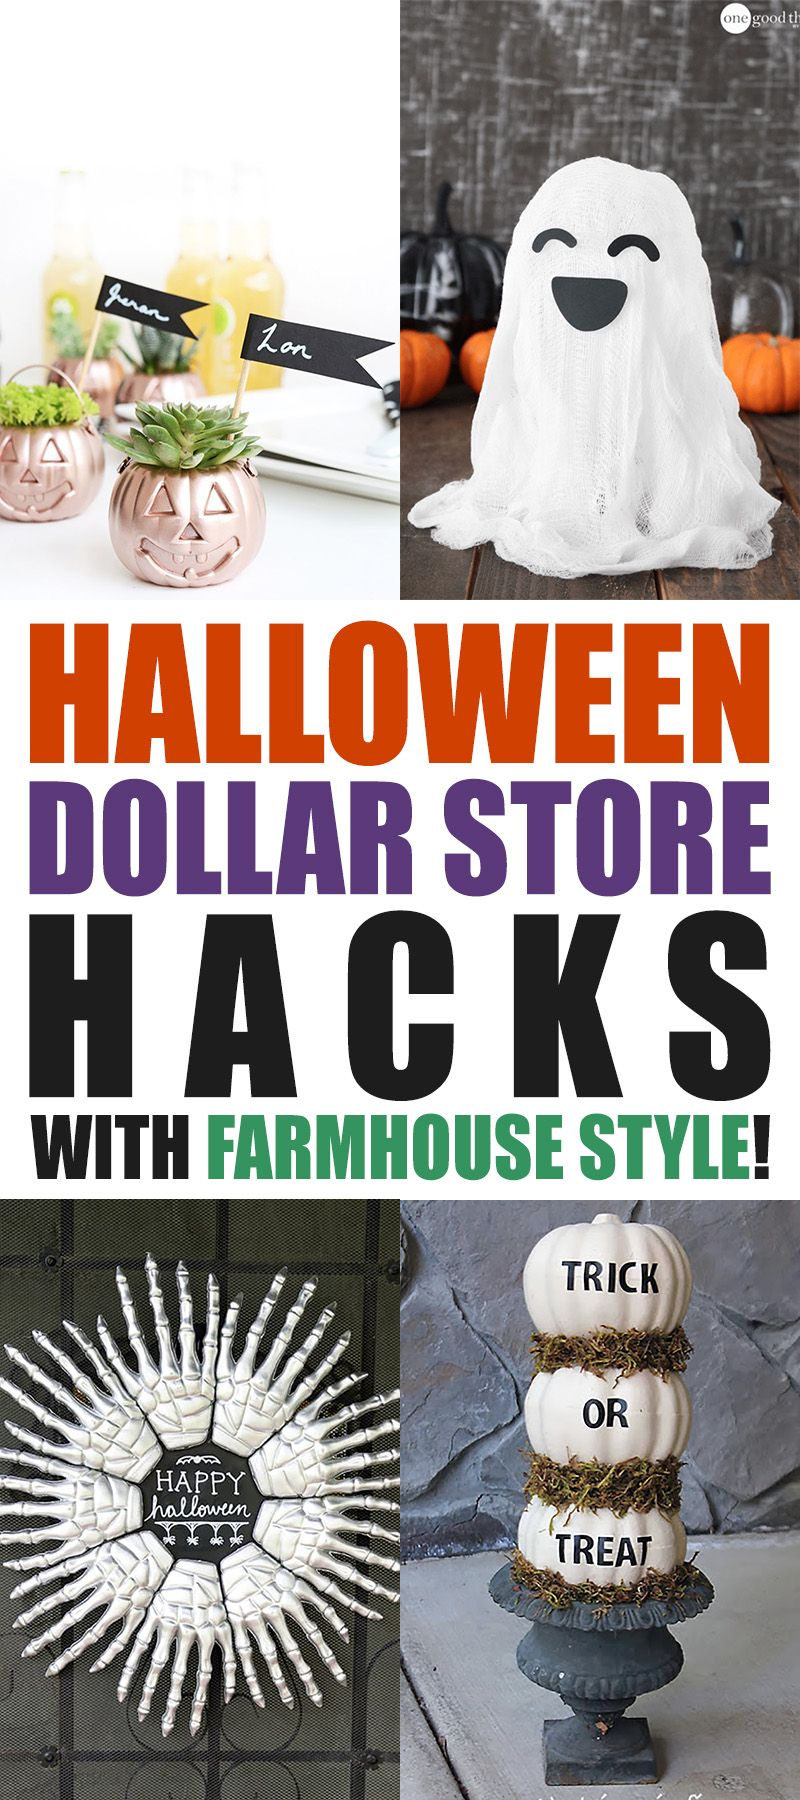 Halloween Dollar Store Hacks with Farmhouse Style